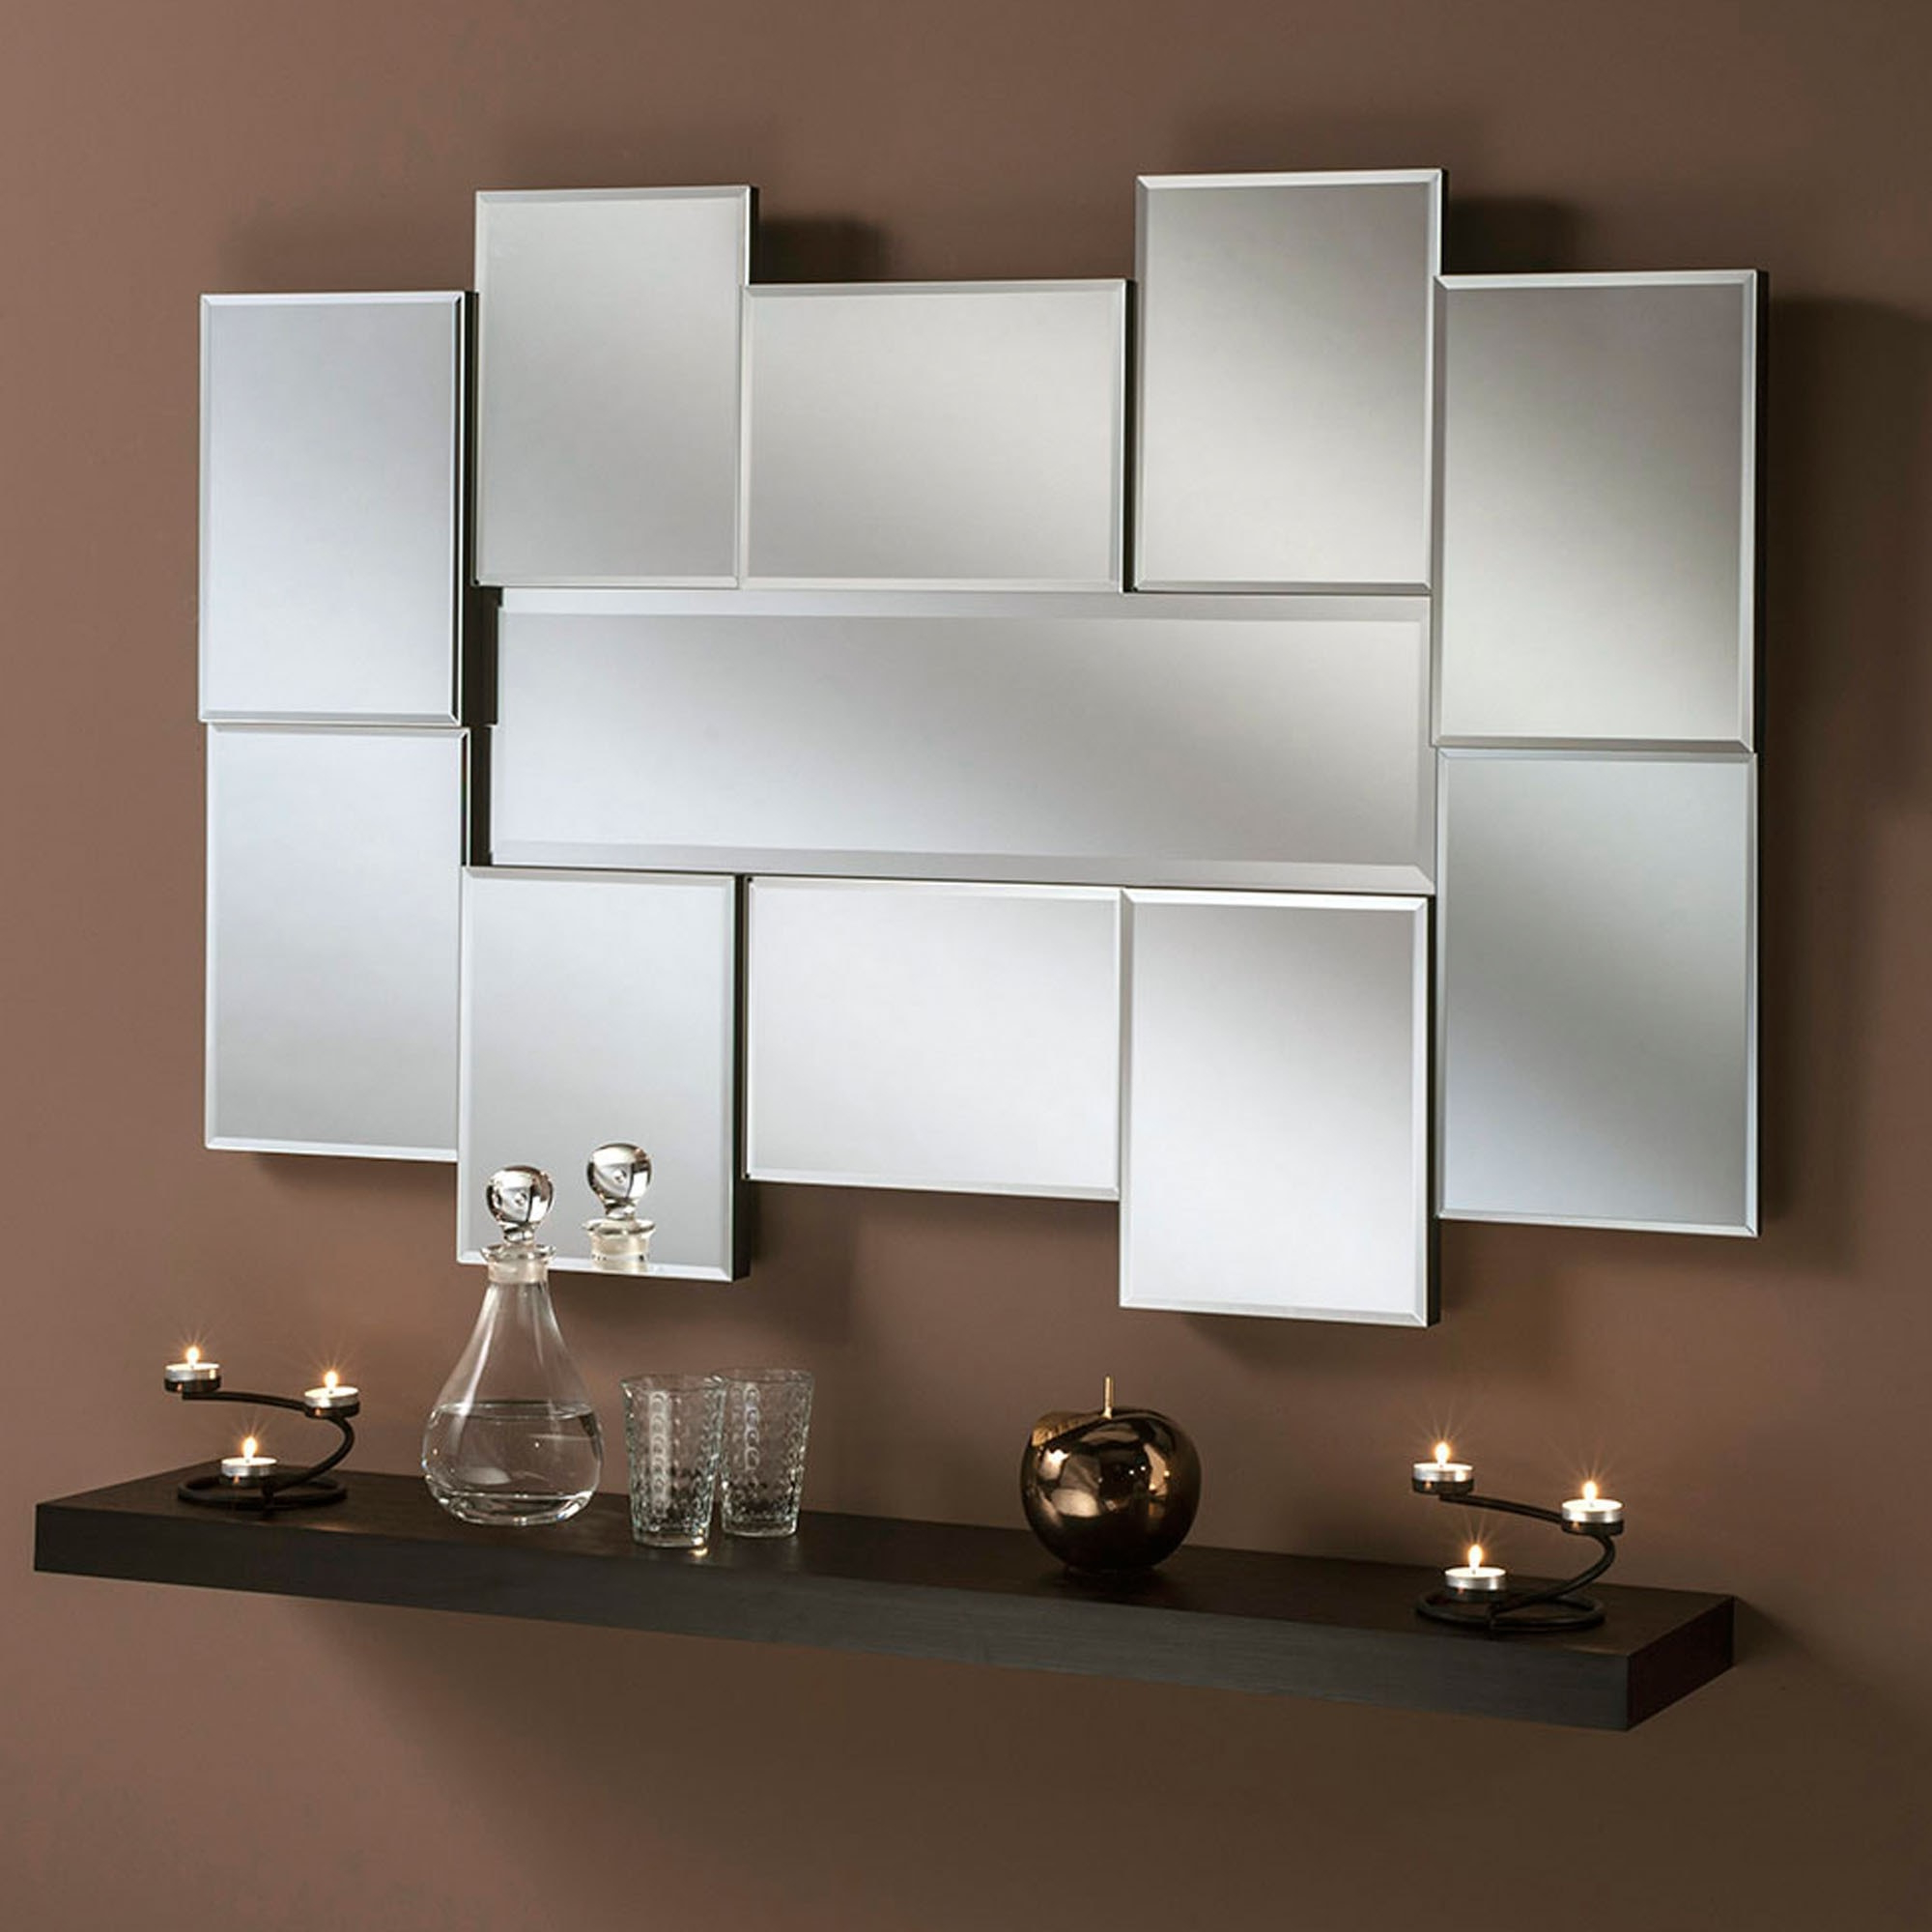 Panel Wall Mirrors With Latest Art Deco Abstract Panel Wall Mirror (View 9 of 20)